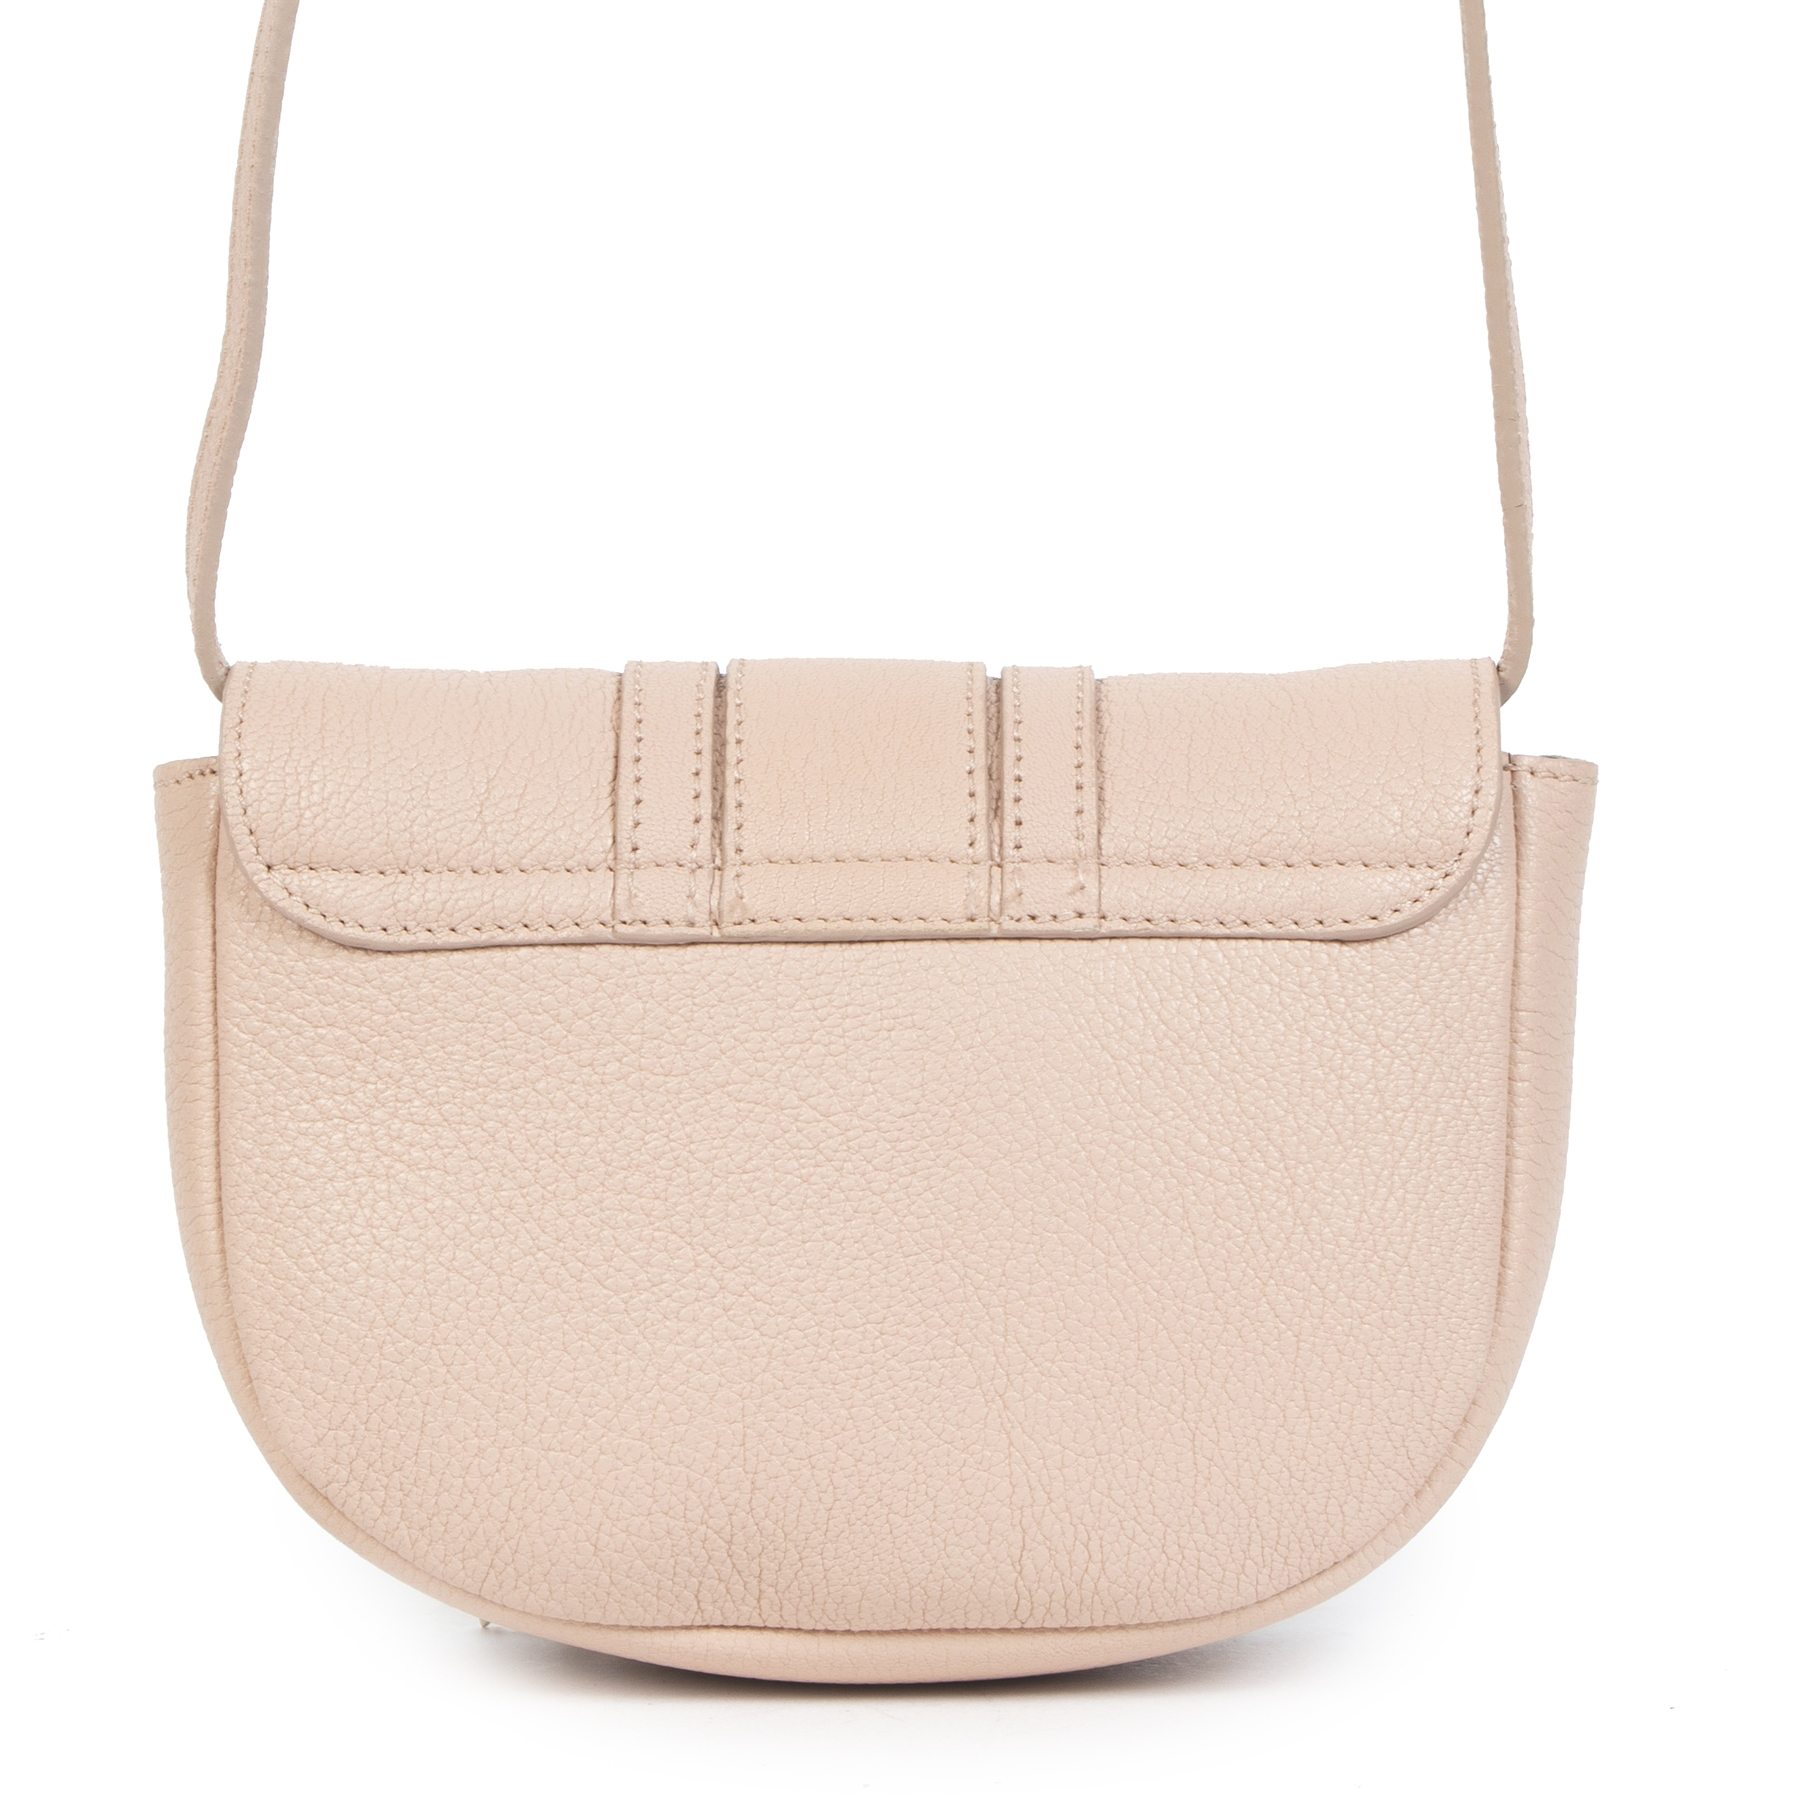 Authentic secondhand Chloé Powder Pink Mini Leather Crossbody Bag designer bags designer brands fashion luxury vintage webshop safe secure online shopping worldwide shipping delivery